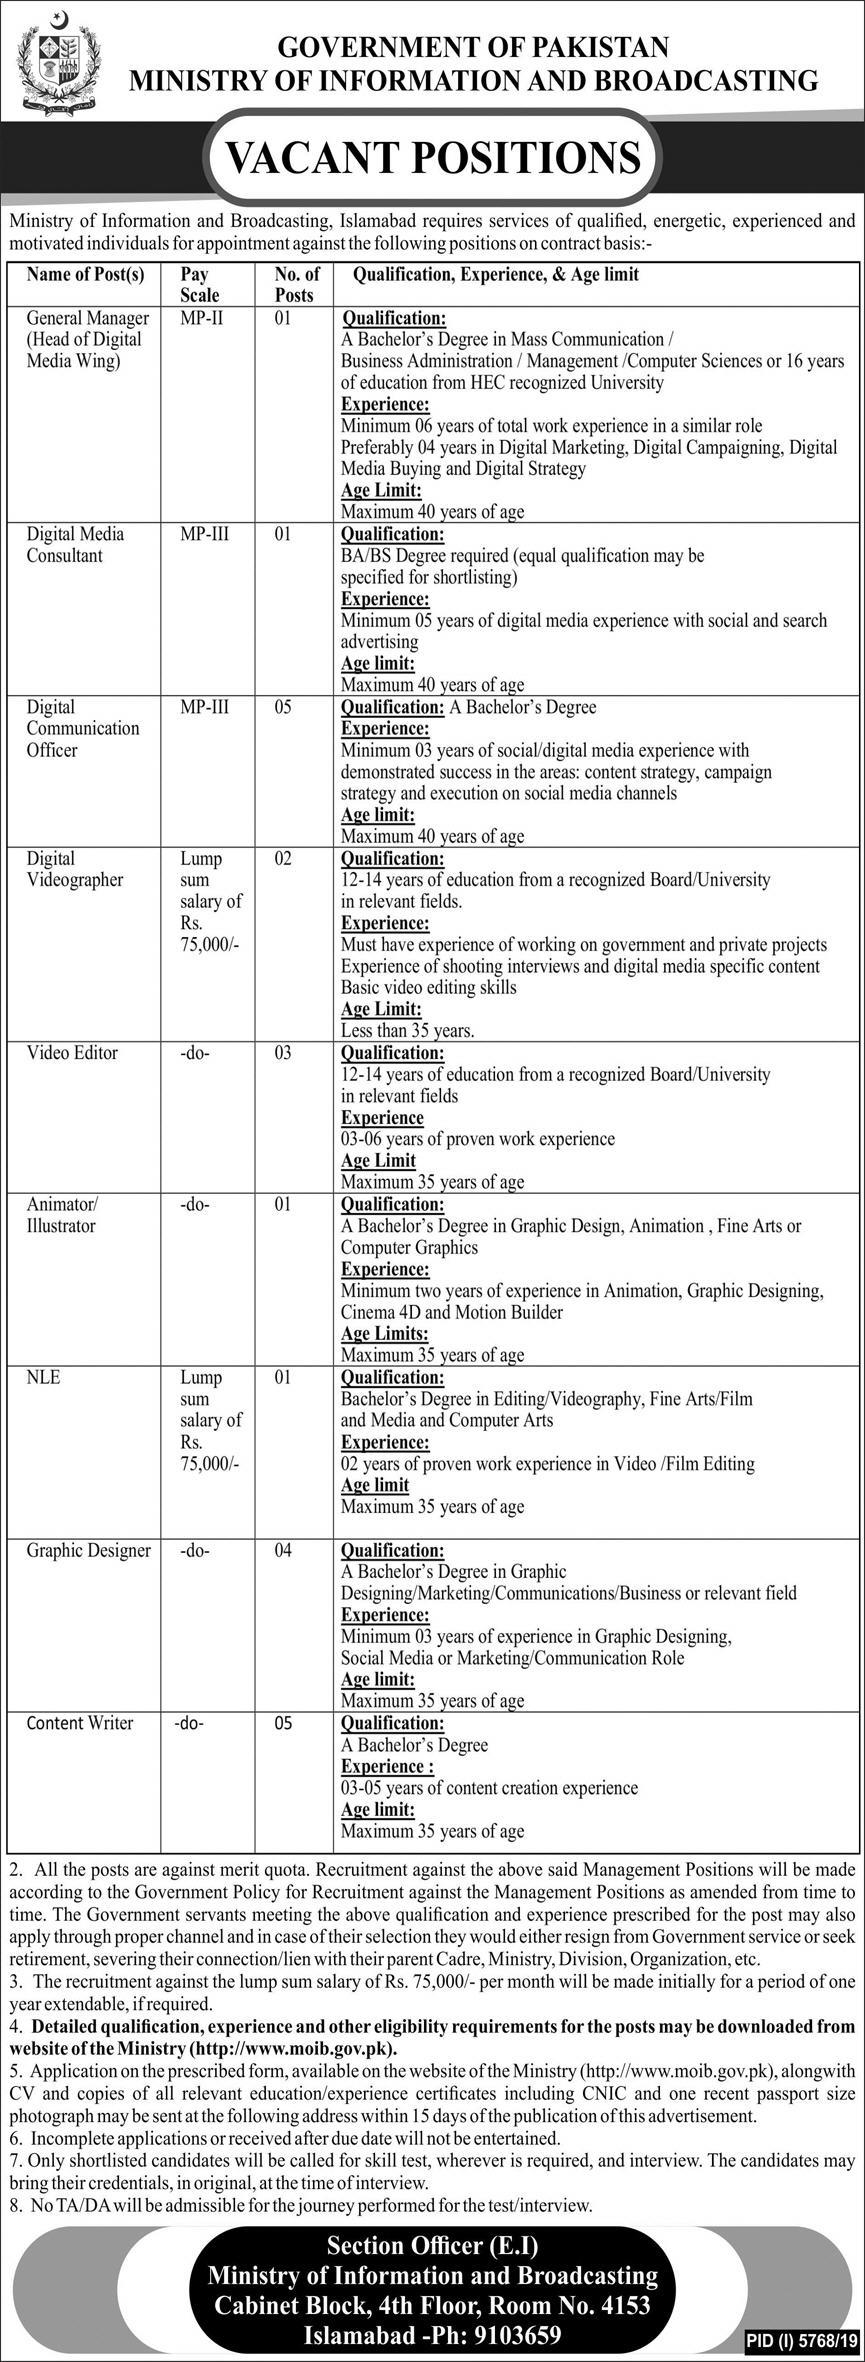 Ministry of Information and Broadcasting (MOIB) Jobs 2020